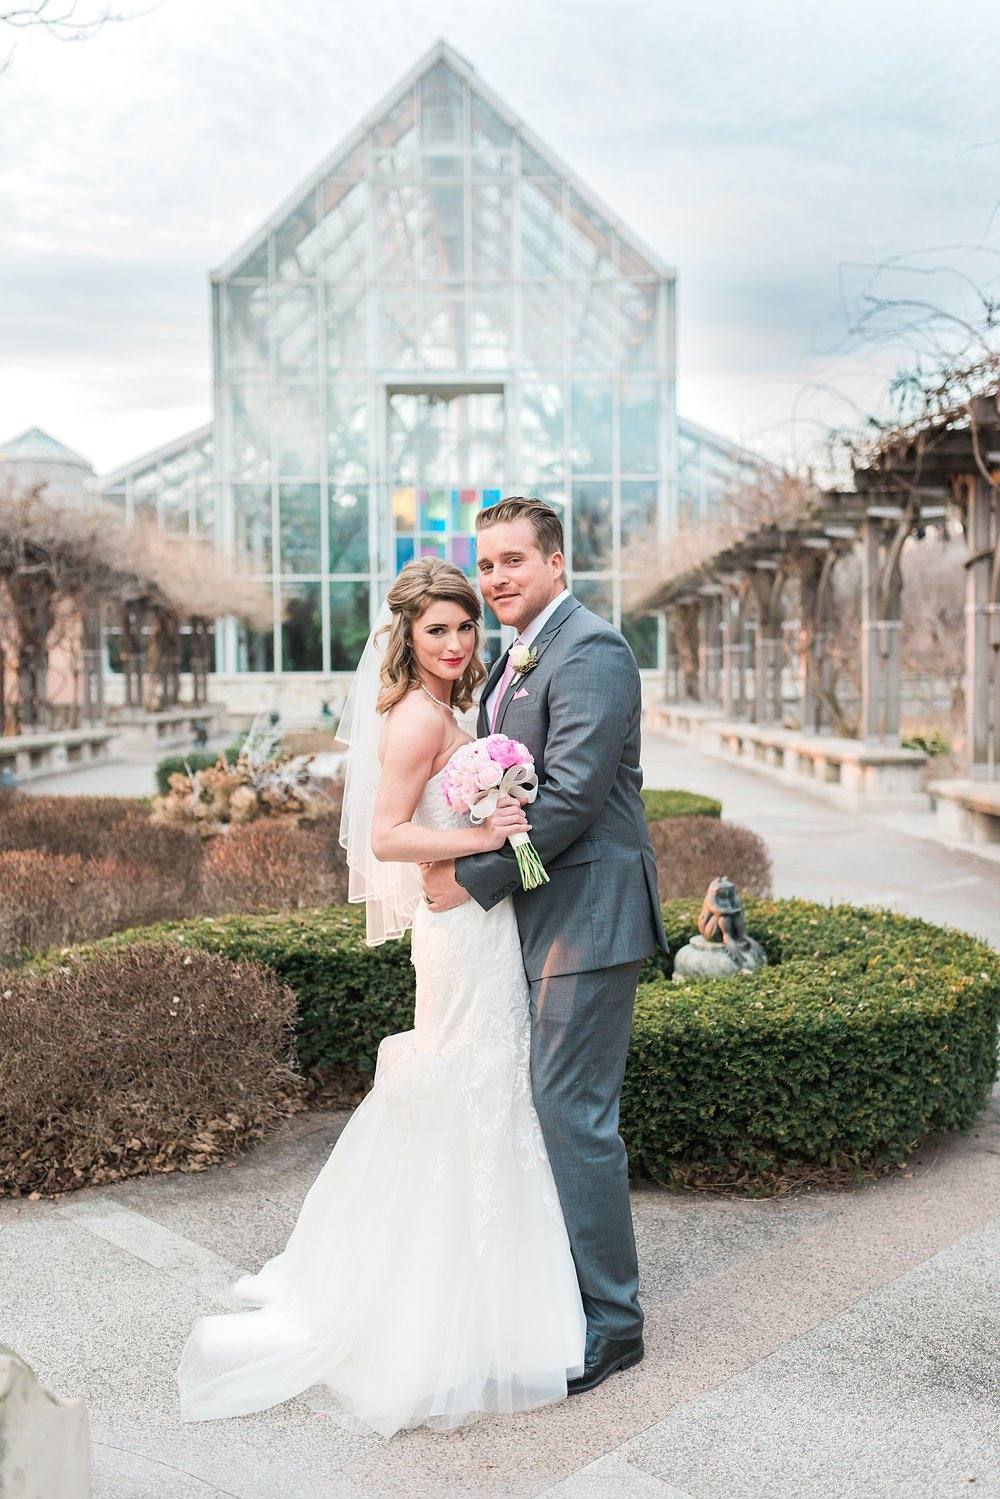 Indianapolis Zoo Wedding | Indiana Wedding Venues | Indianapolis Zoo | Alison Mae Photography